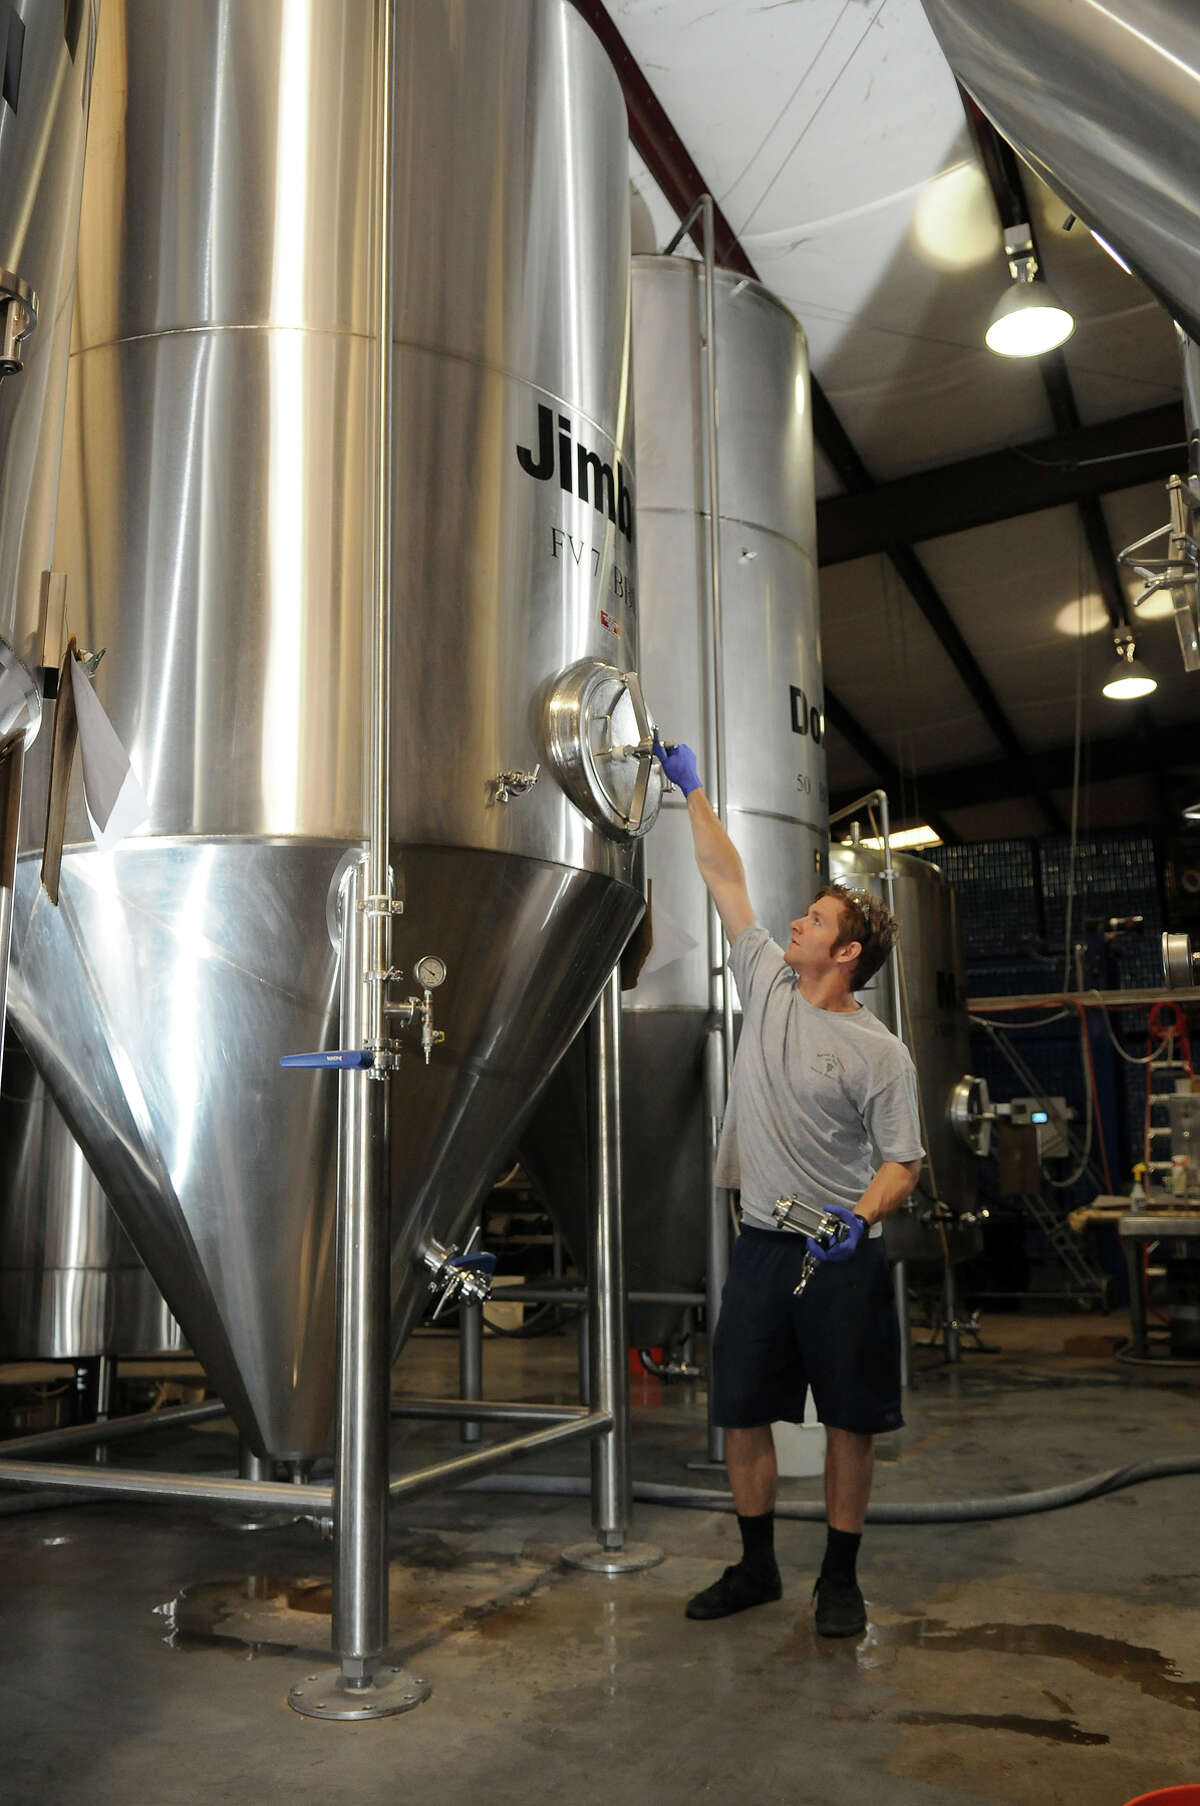 Brewer Jeff Hamm checks the pressure on a fermentation vessel in the tank farm at the Southern Star Brewery in Conroe.